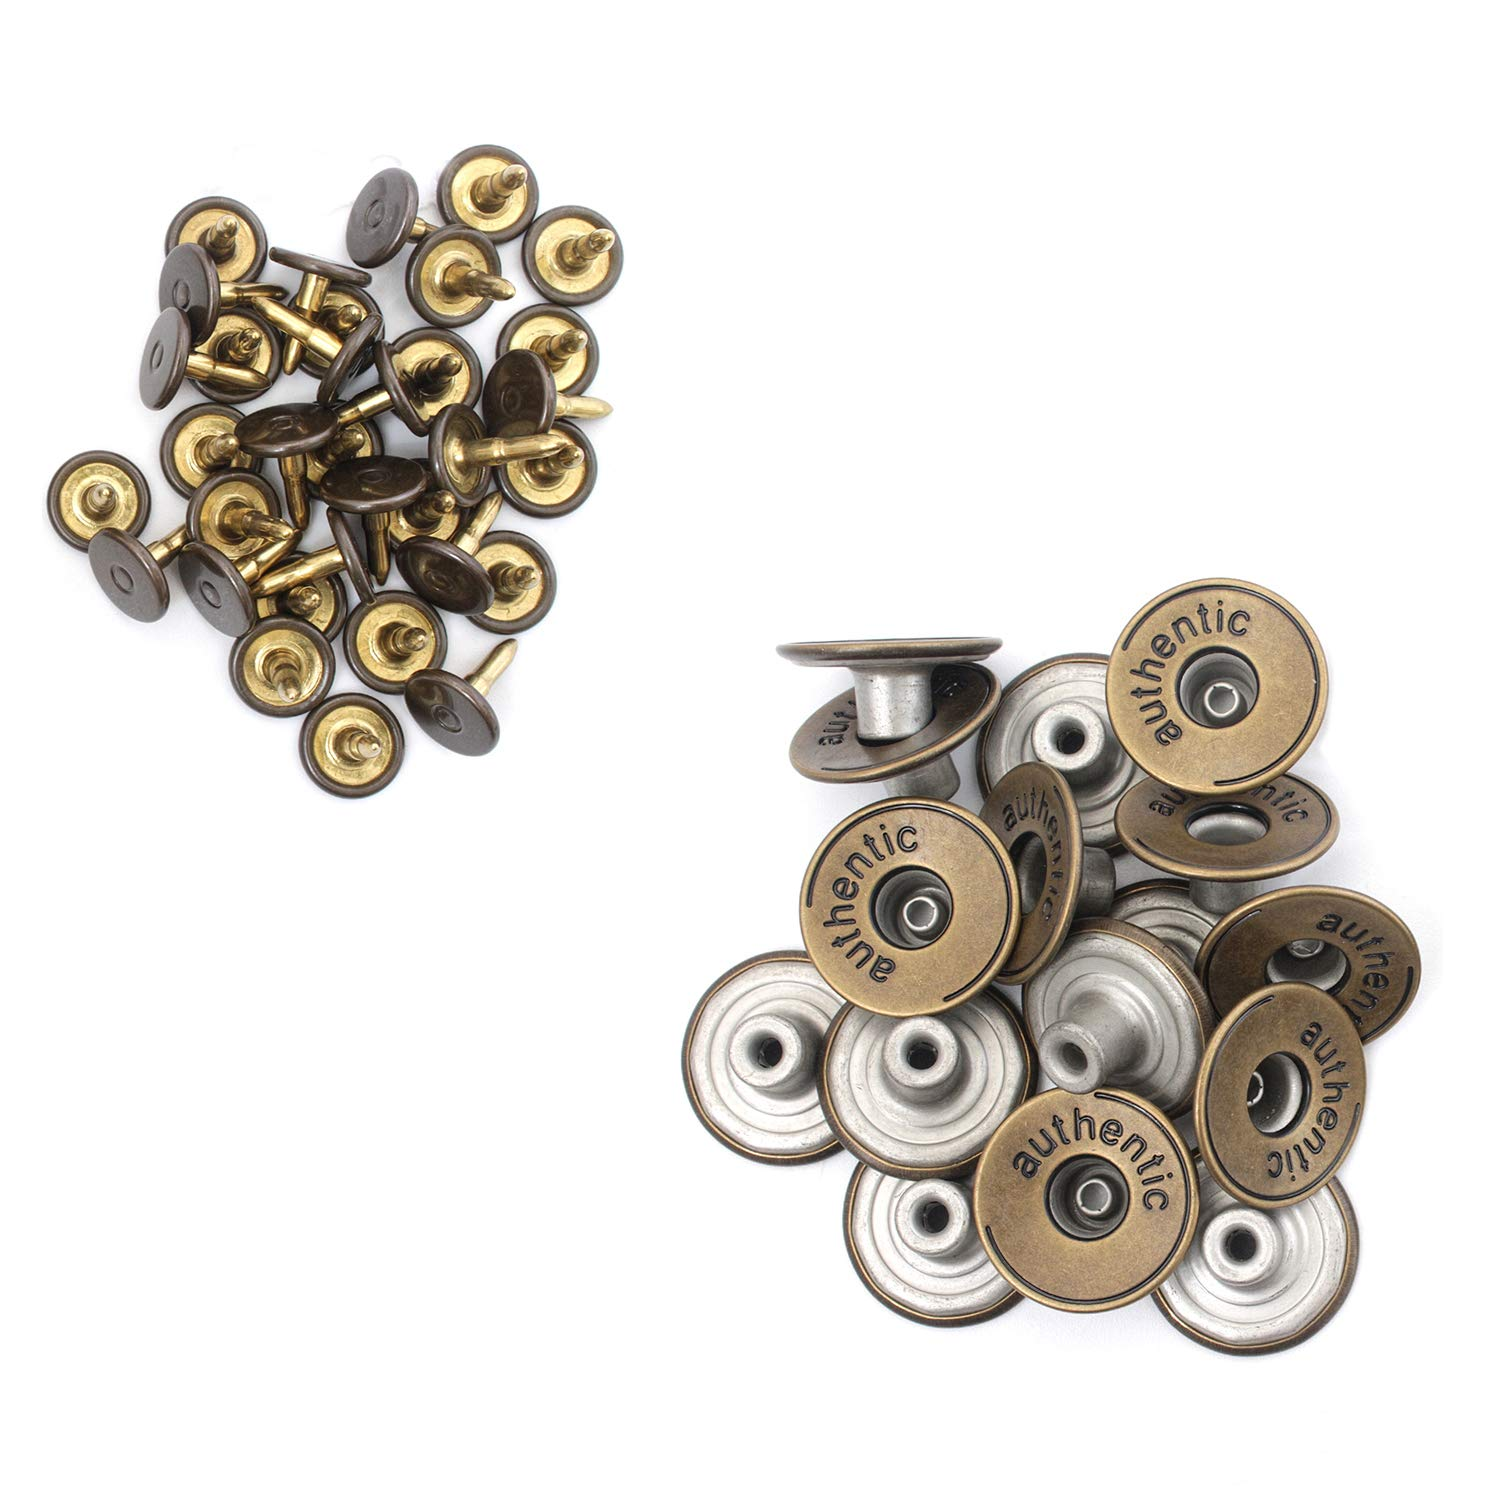 17mm Bronze Jeans buttons with Pins Clothing Repairing Denims Jacket Dark Bronze